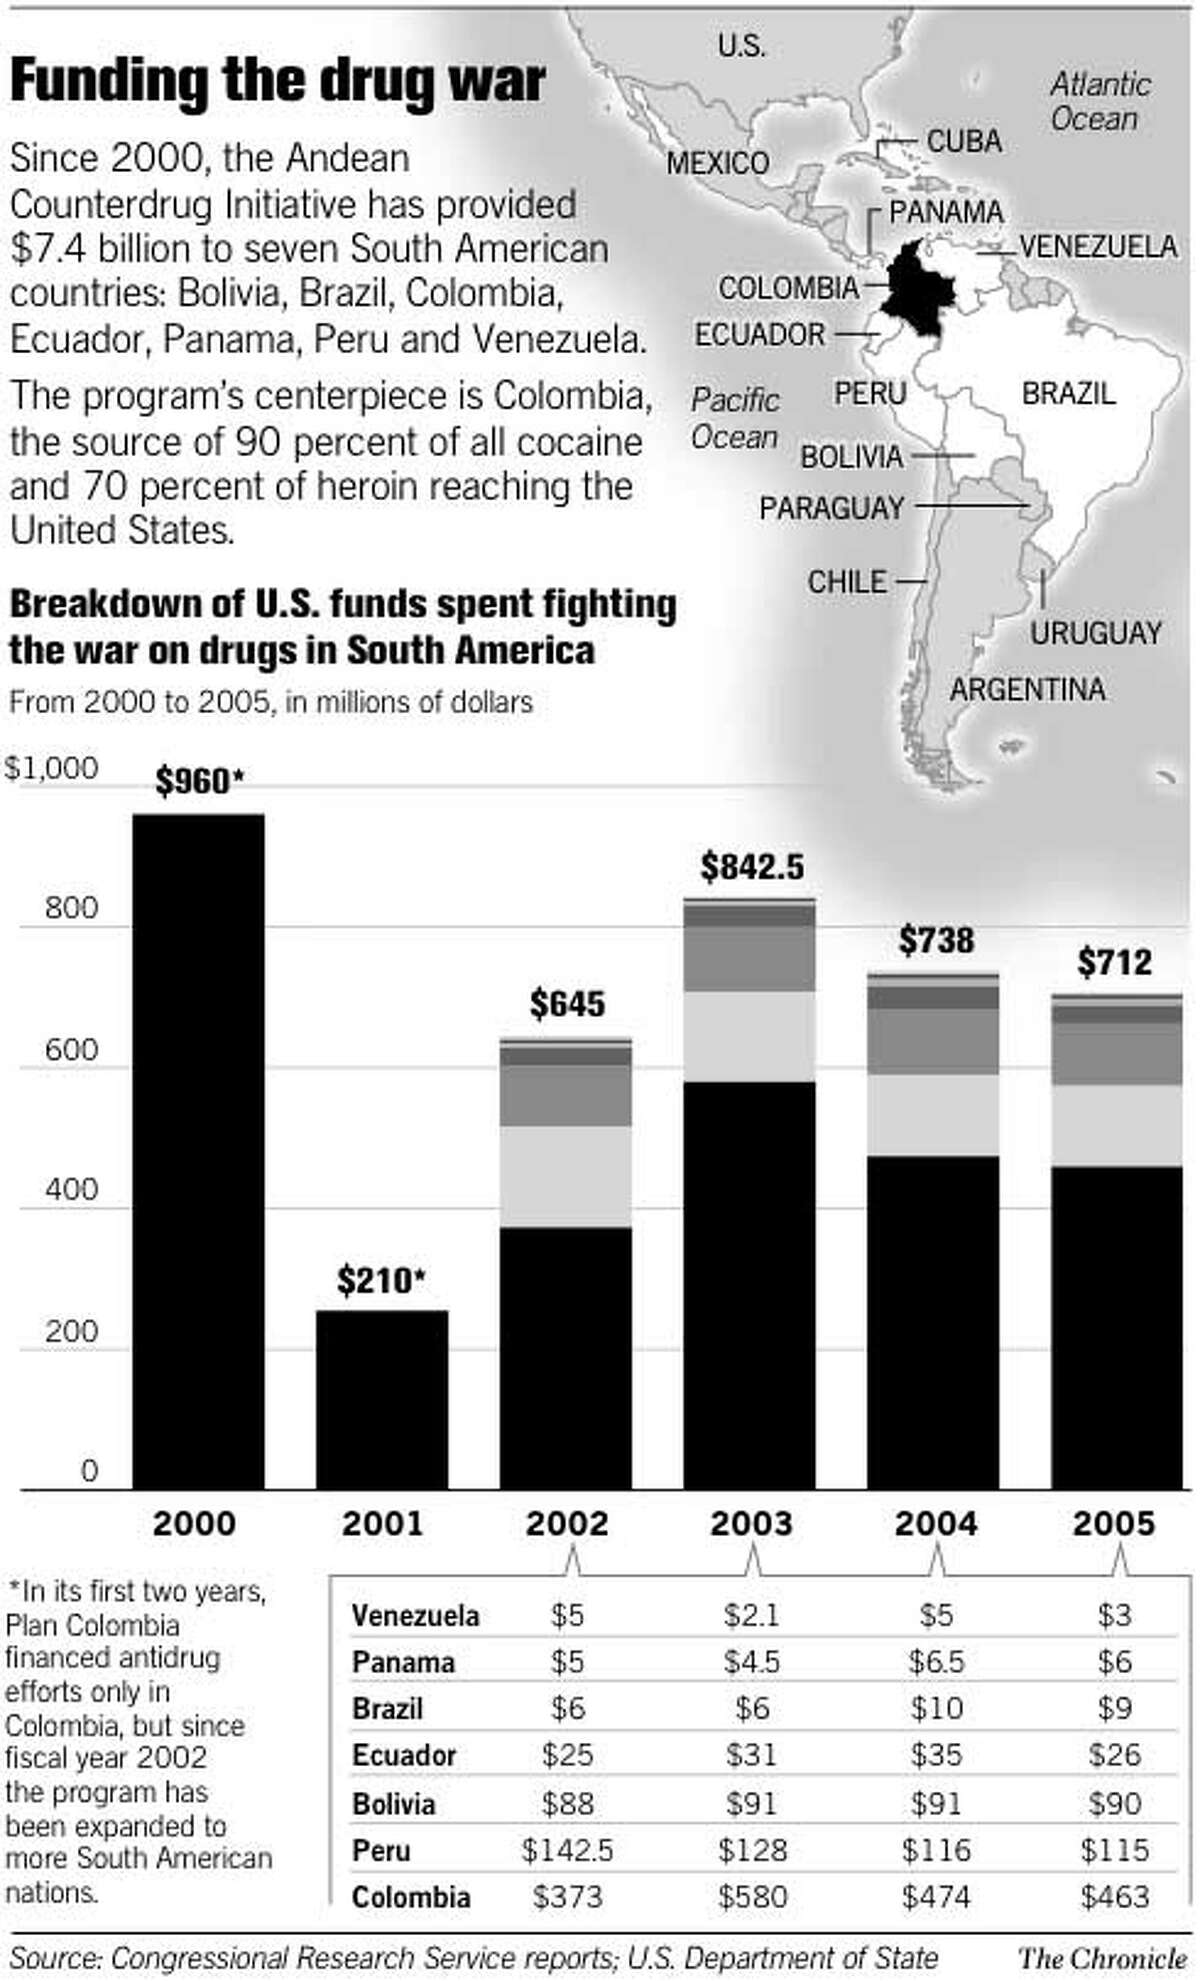 Funding the Drug War. Chronicle Graphic